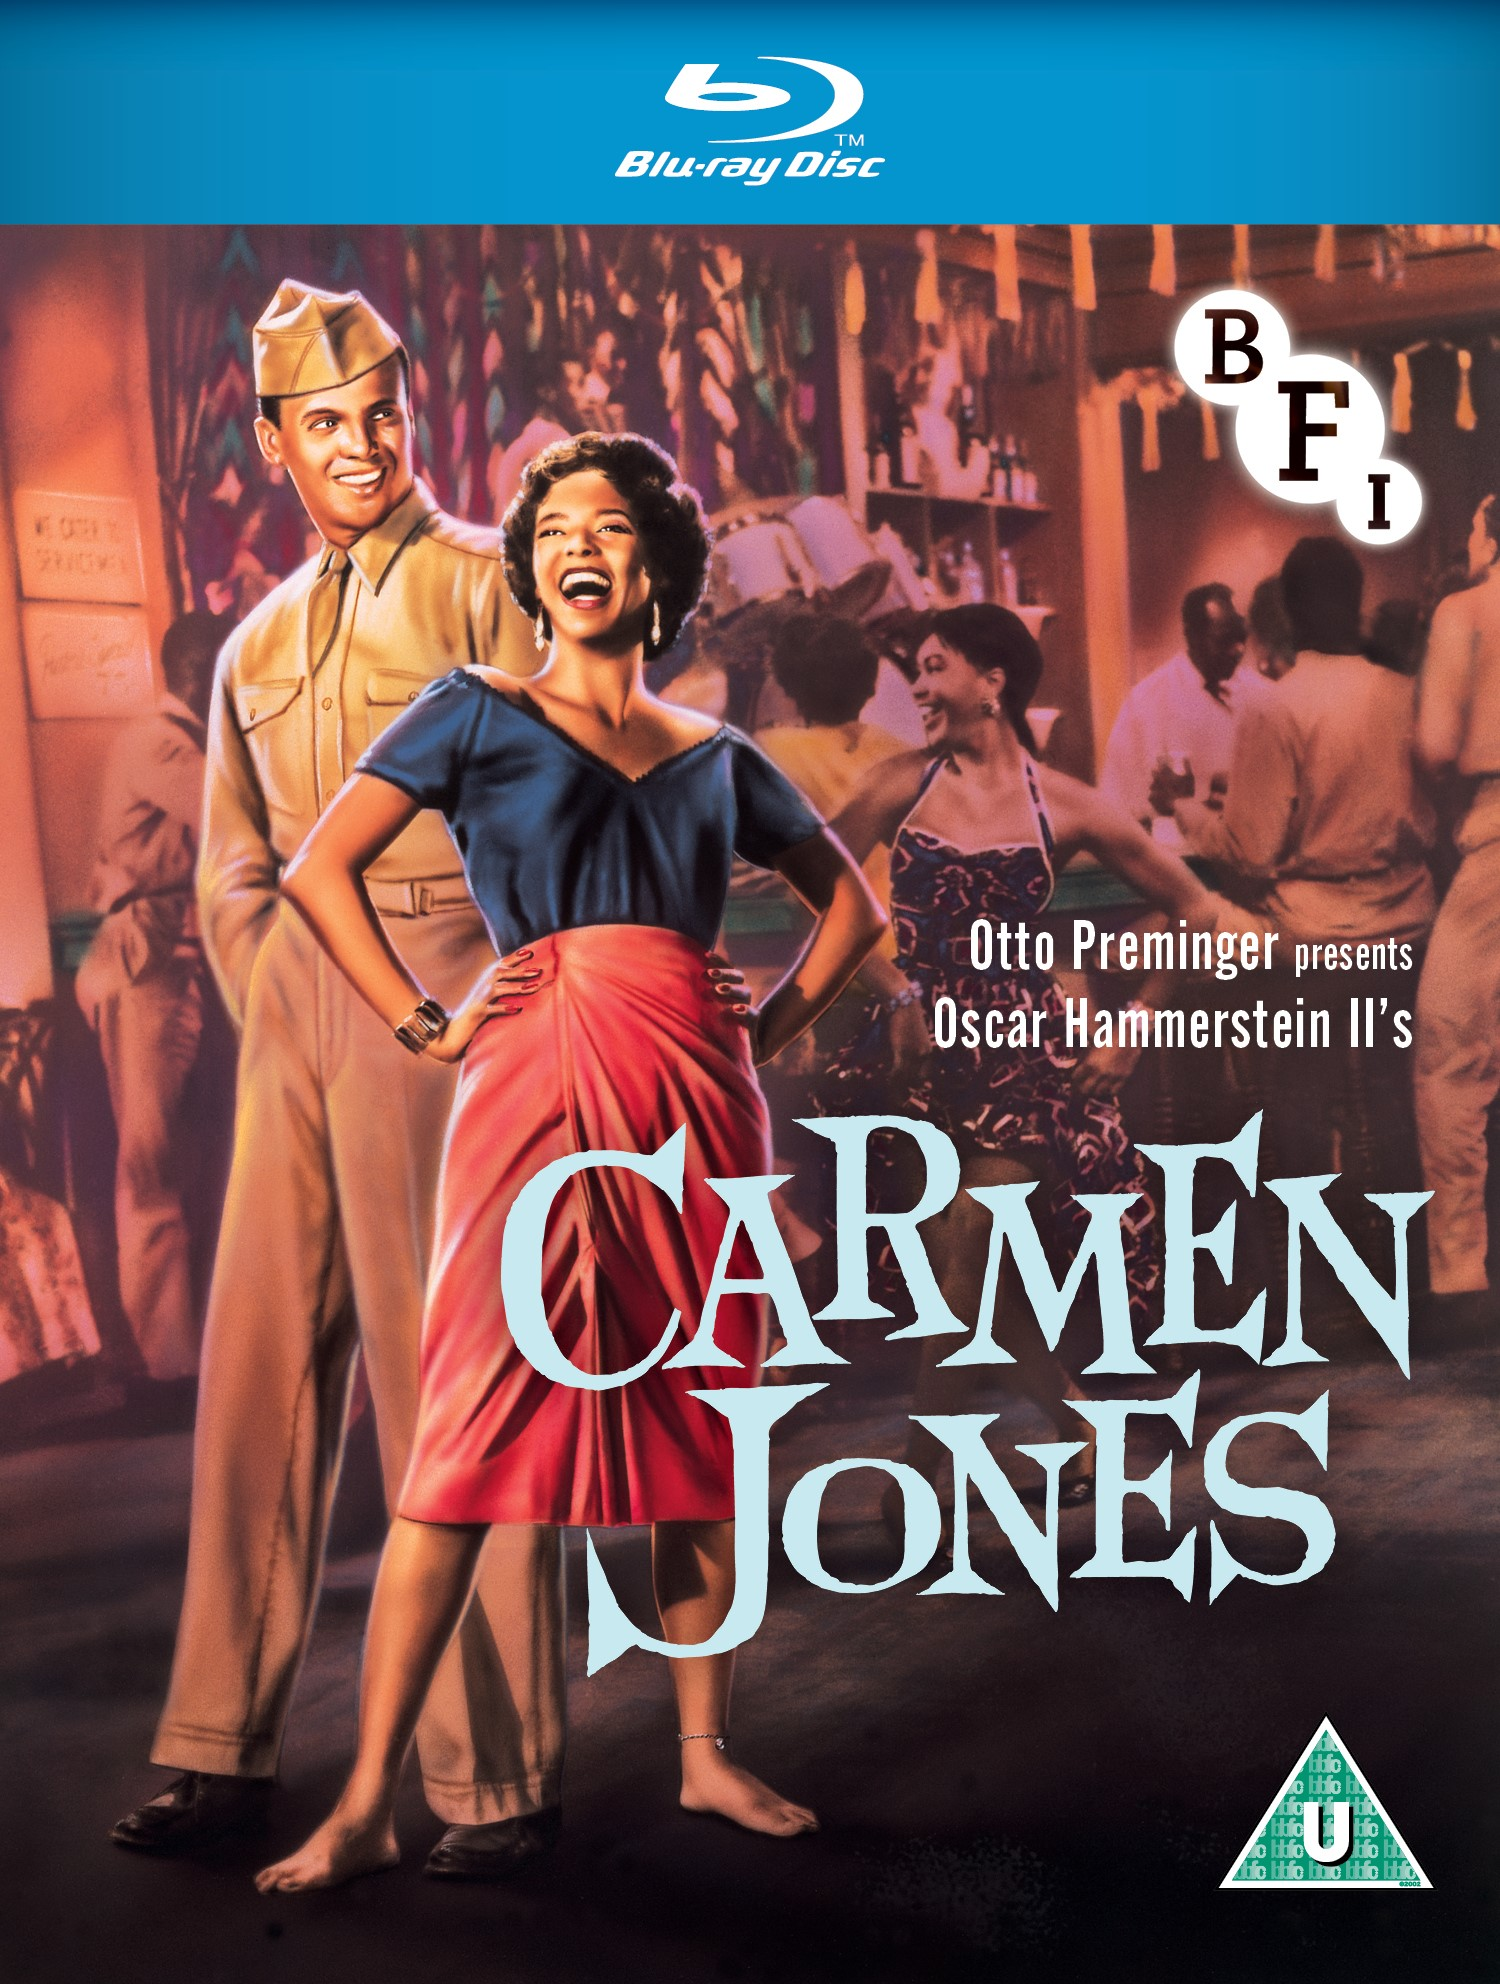 Buy Carmen Jones Blu-ray